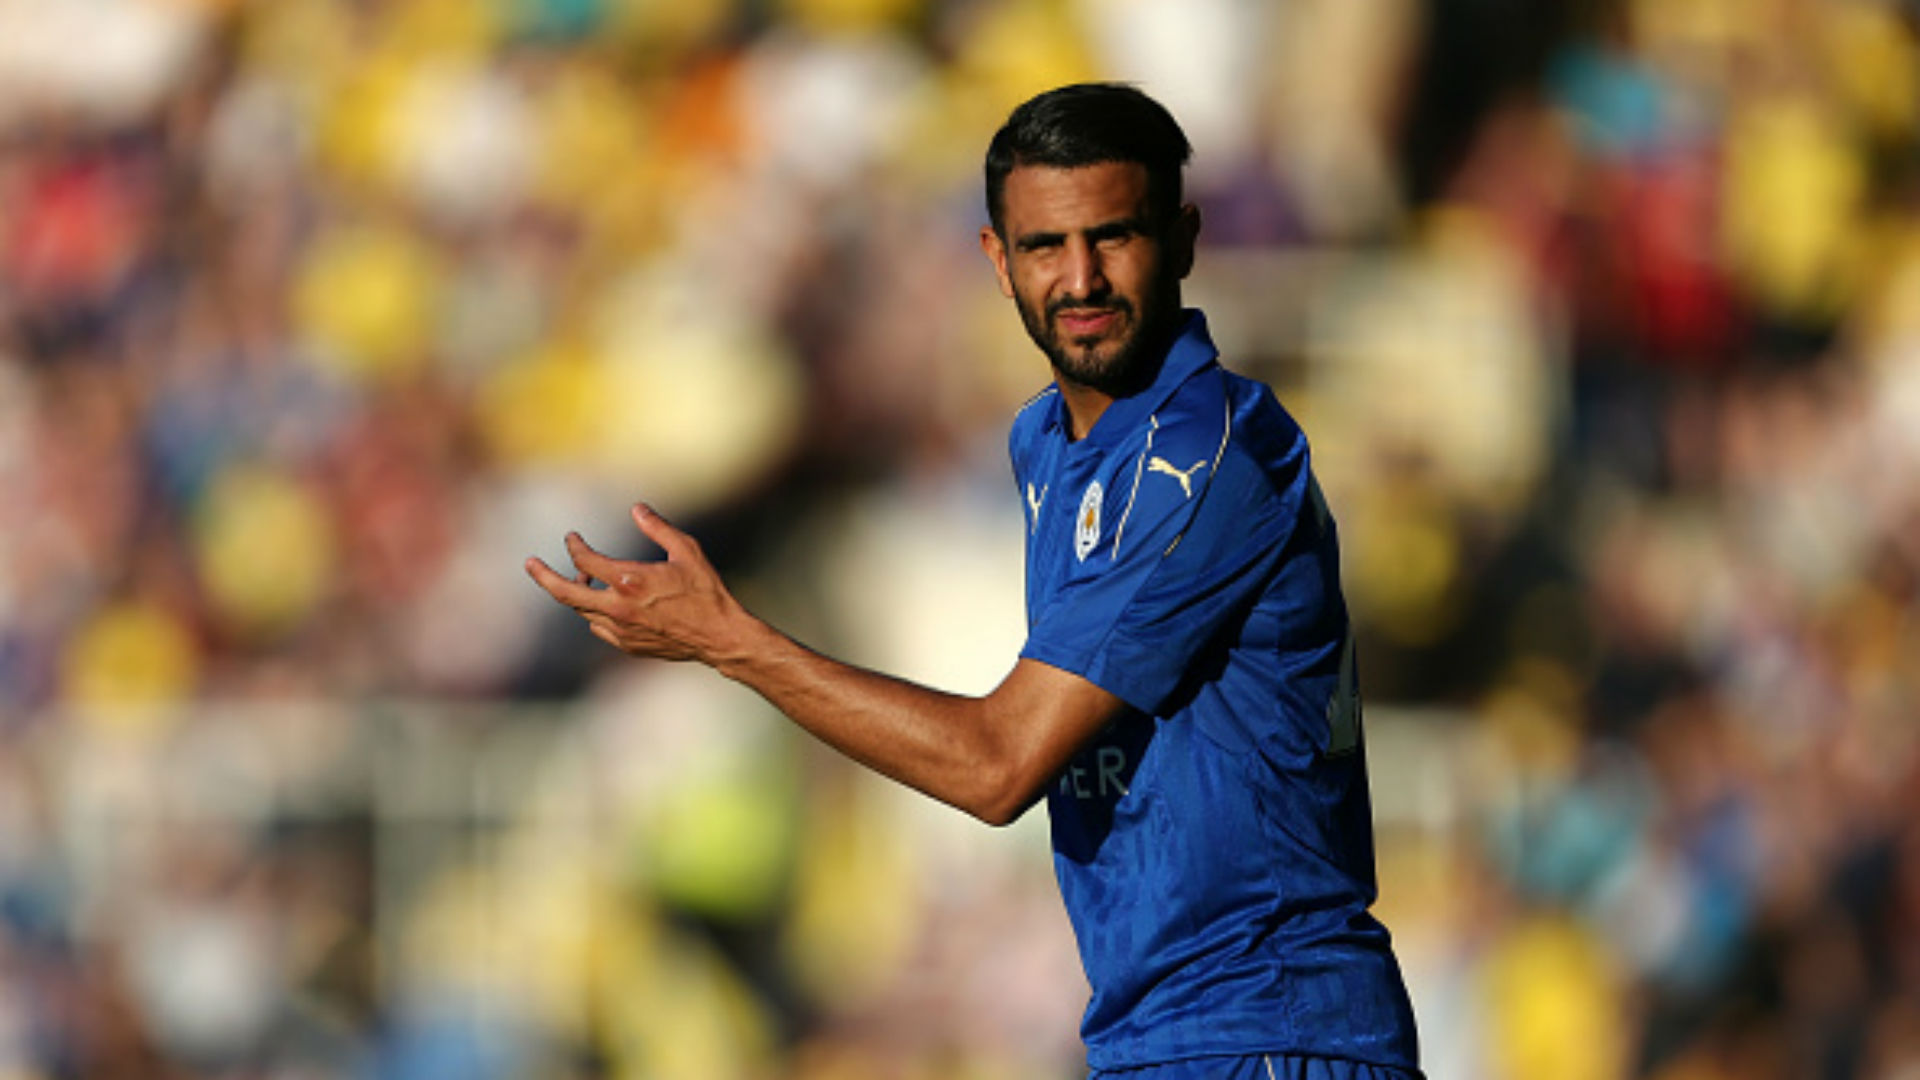 Riyad Mahrez Leicester City Friendly Match Partido Amistoso Oxford 22072016